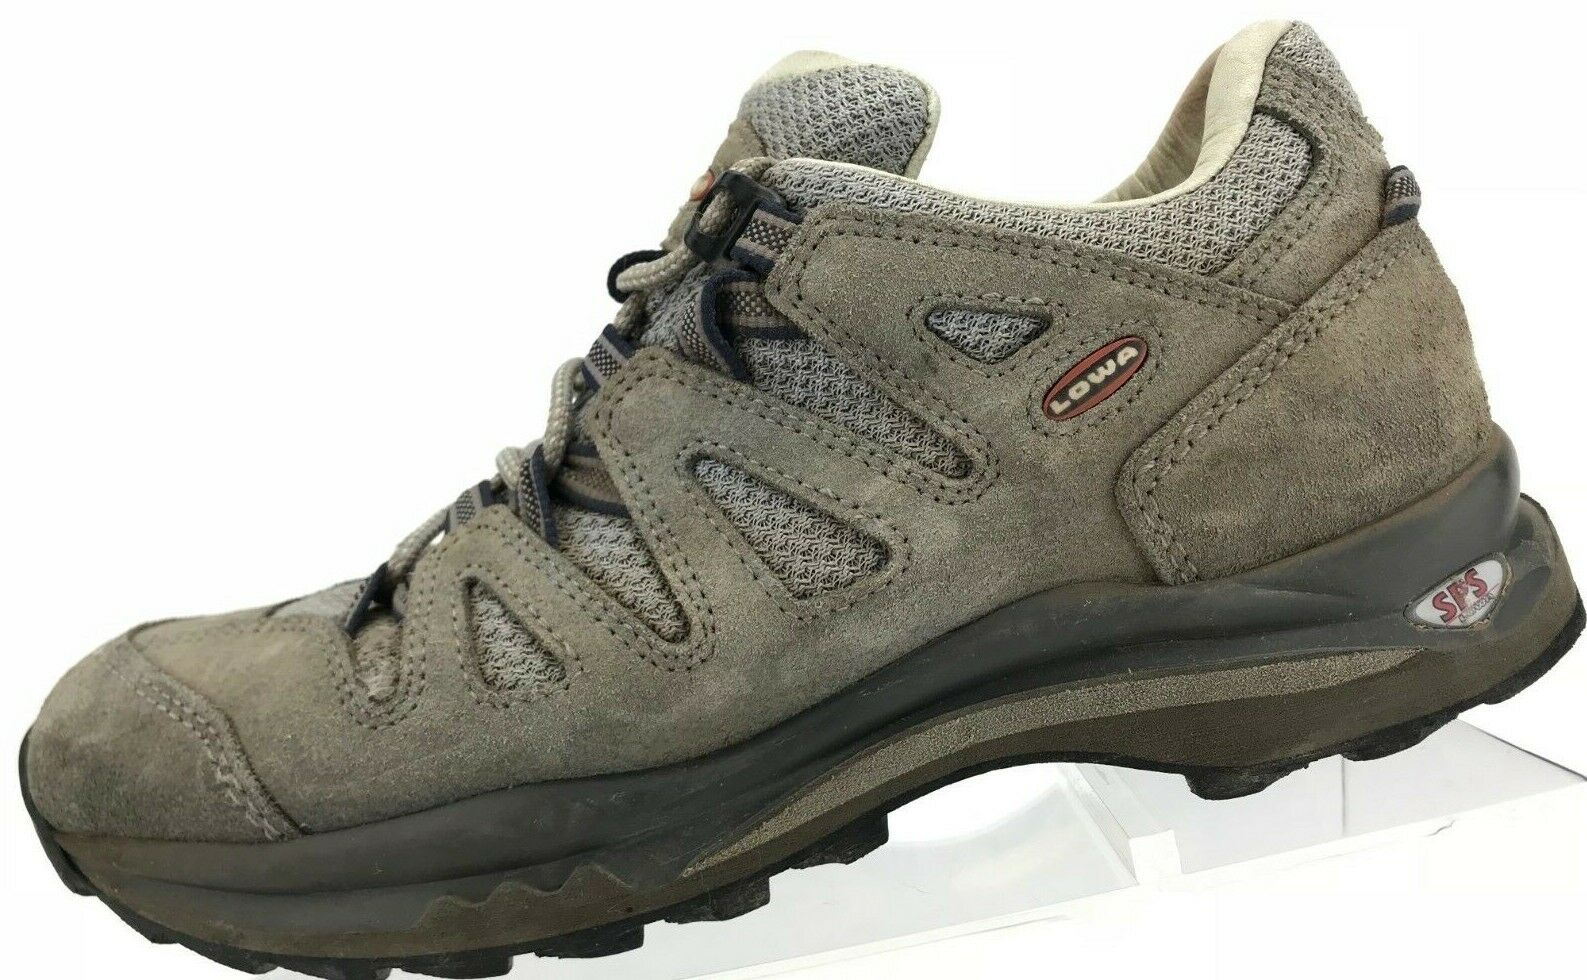 Lowa Hiking shoes SPS Climate Control Sys. All Terrain shoes  Womens 7 Brwn